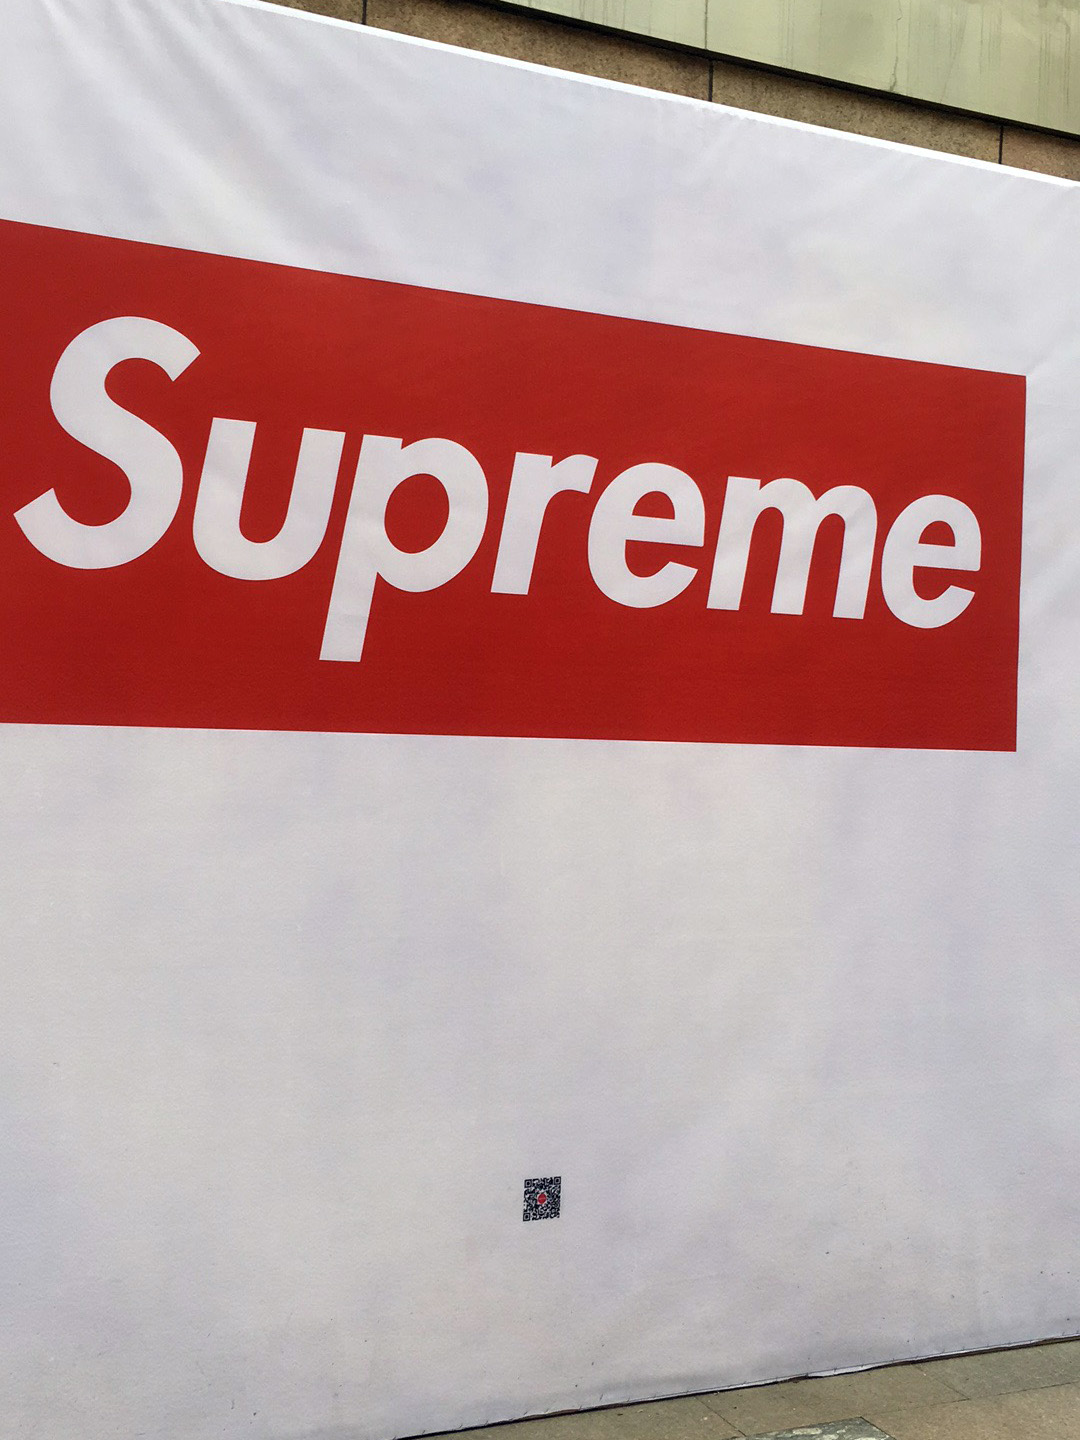 On December 17th, 2018 I took a picture of Supreme store blockage during innovation.